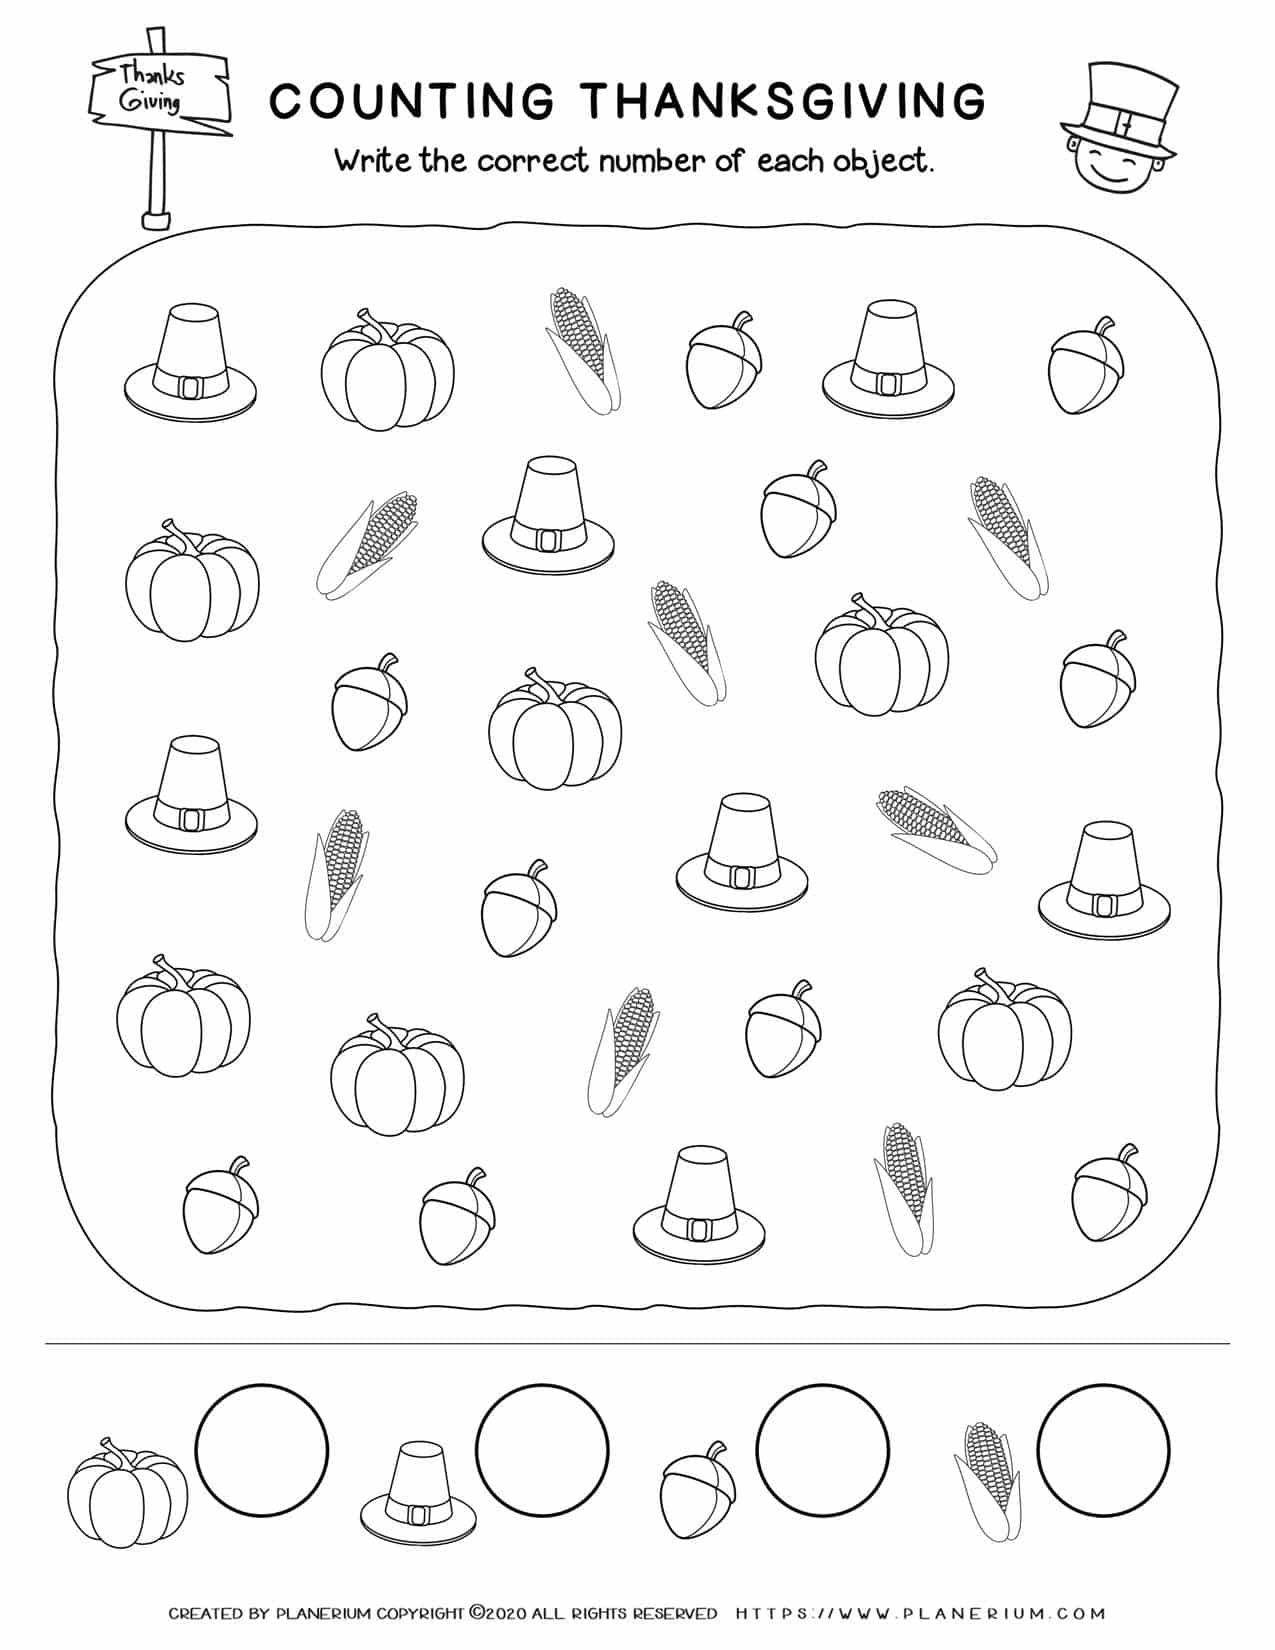 Counting Objects - Thanksgiving Worksheet | Planerium